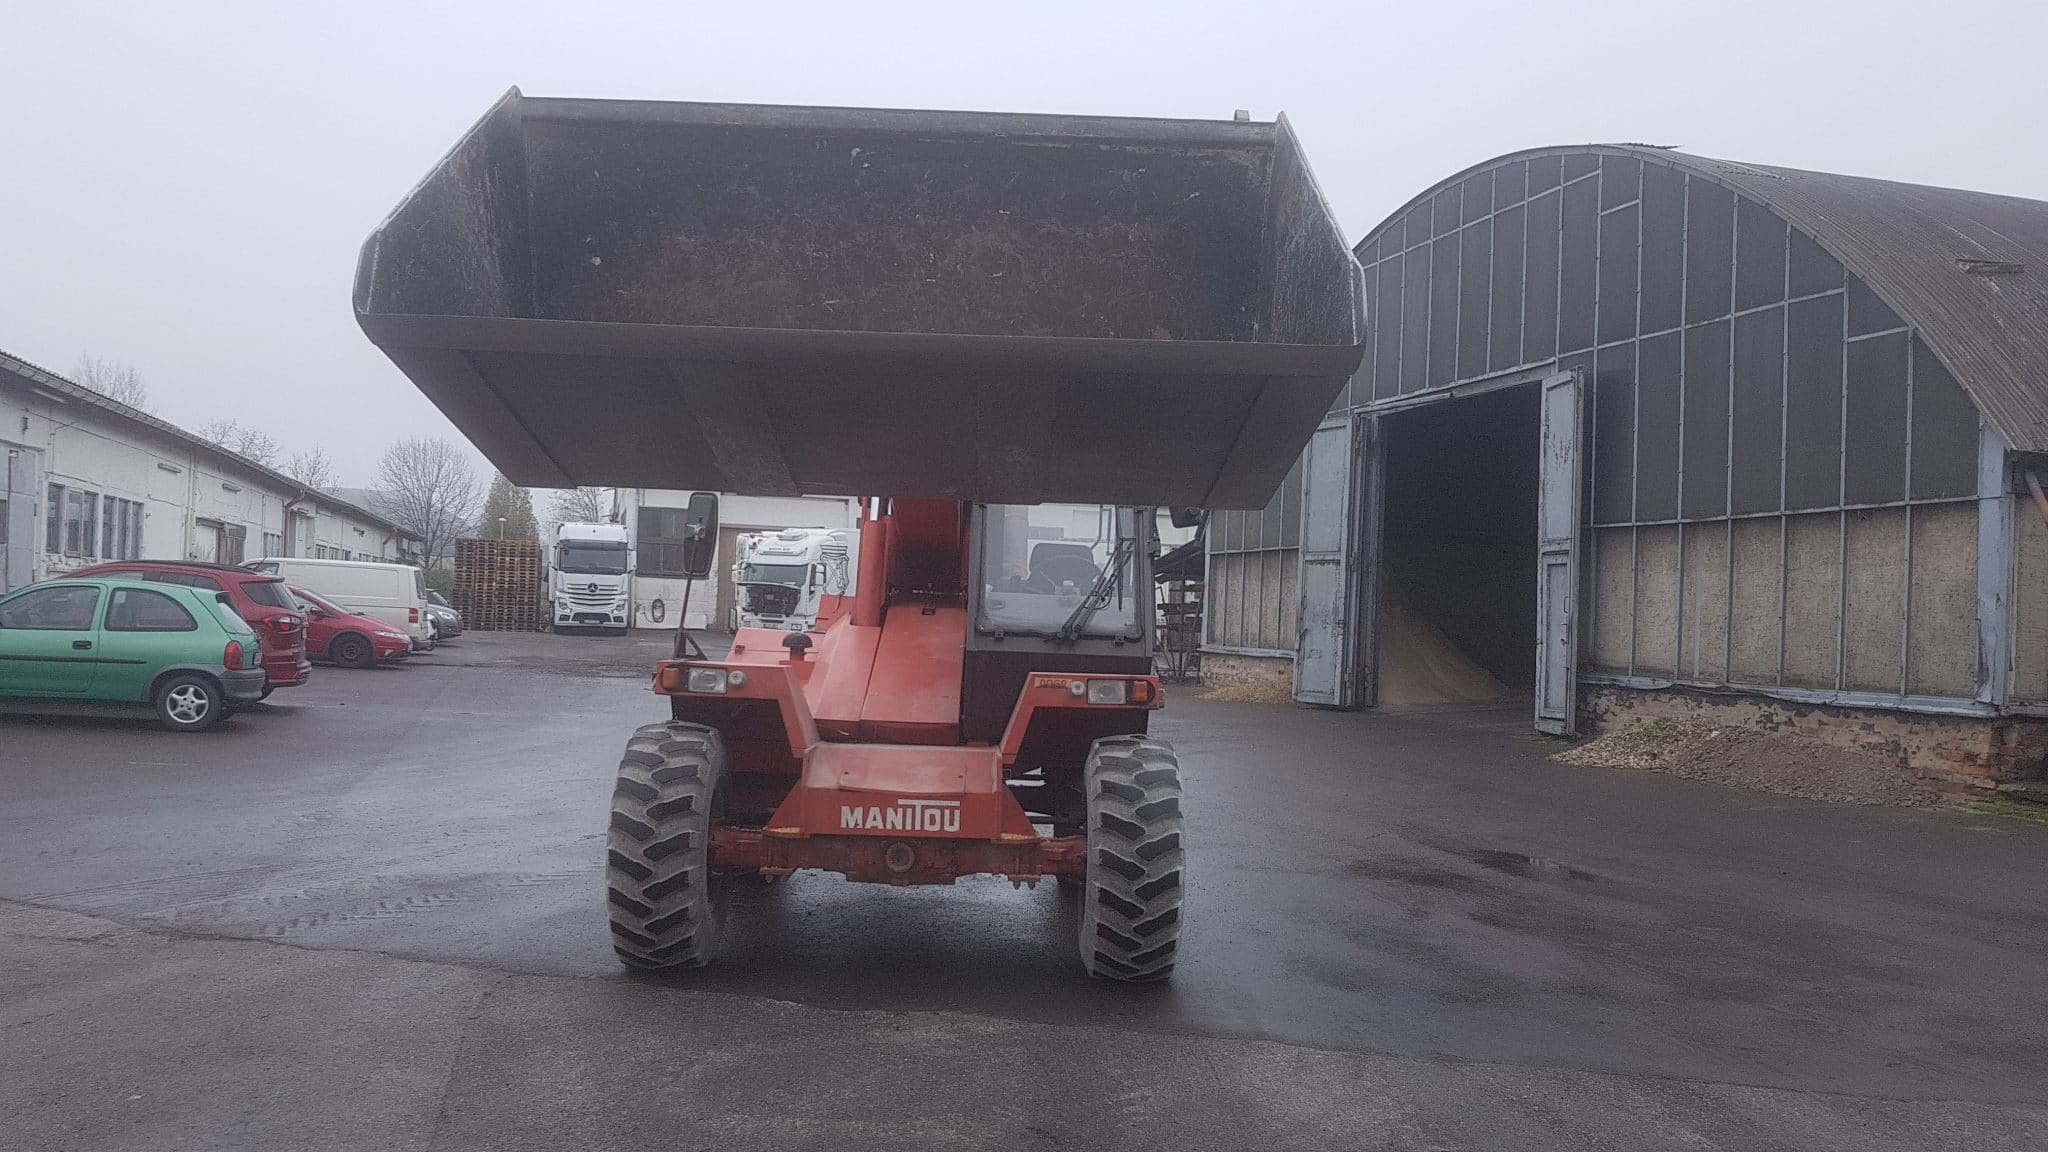 16/70-20 Magna MB260 are used for a Manitou Telescopic Handler in Germany